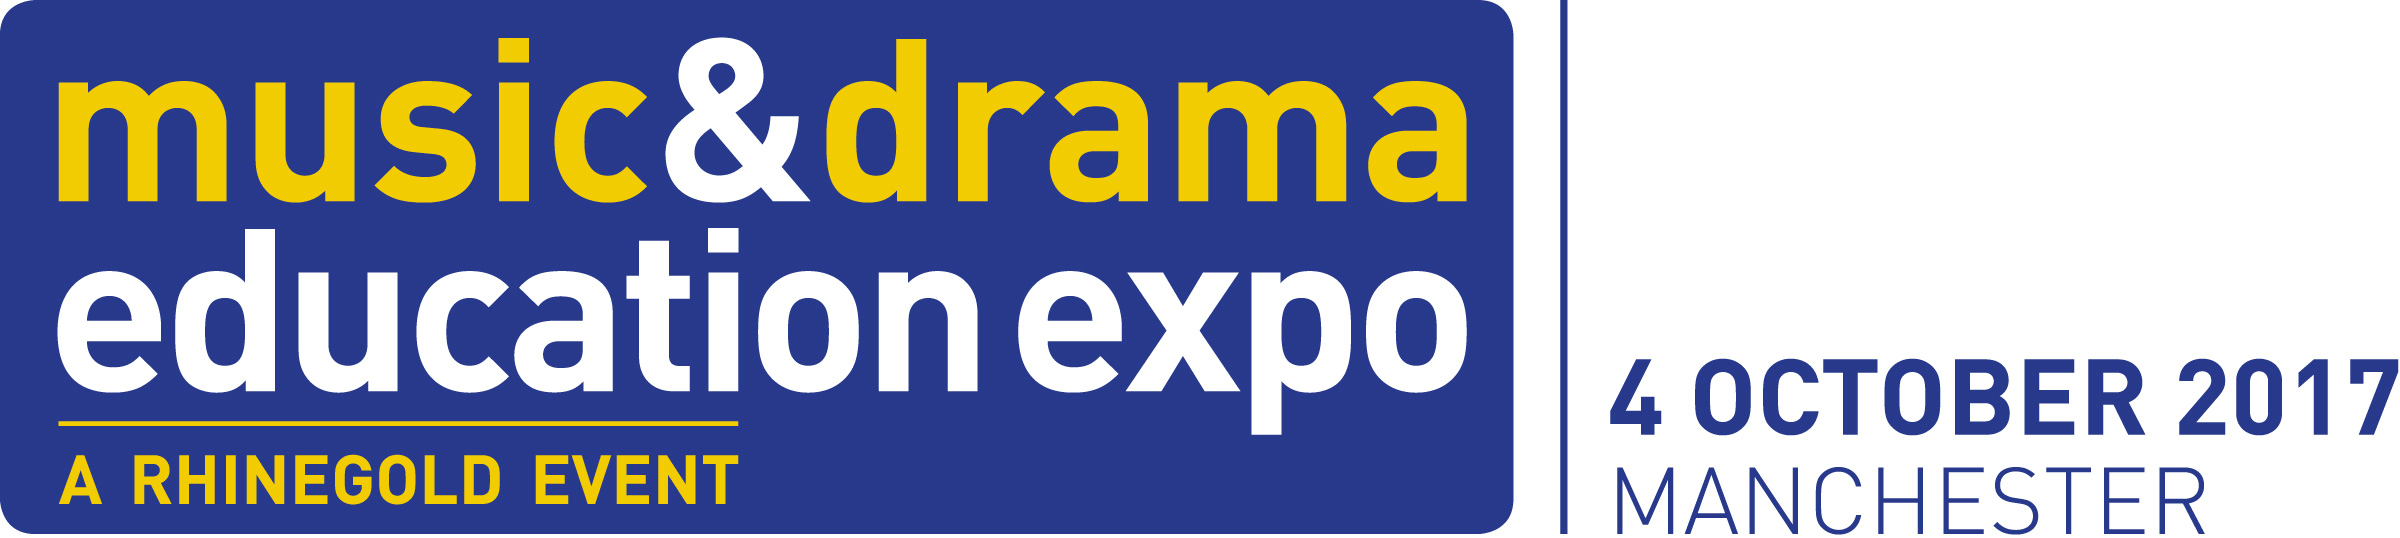 music & drama education expo Manchester 2017